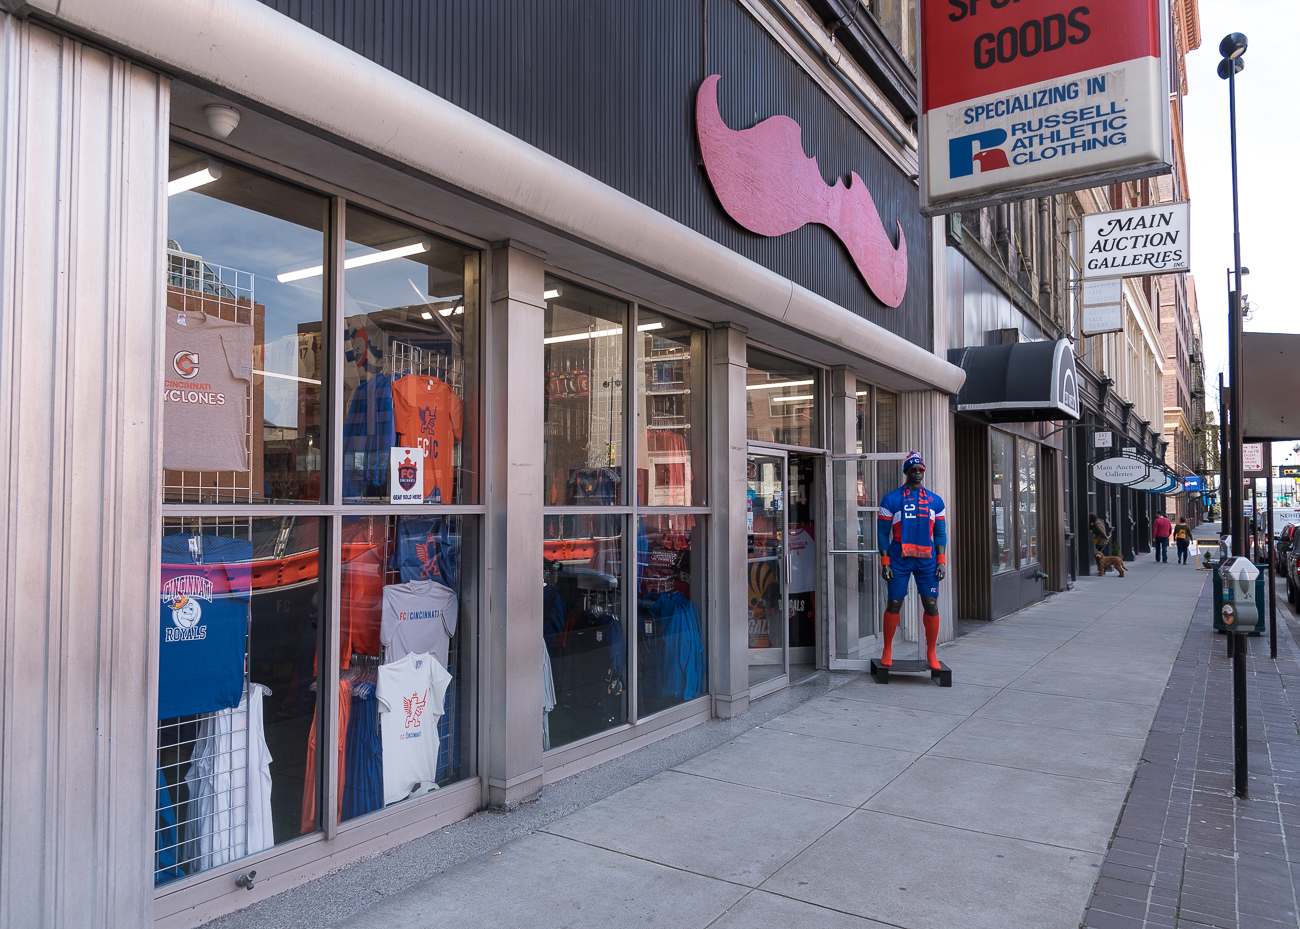 4th Street has a sporting goods store: Koch Sporting Goods / ADDRESS: 131 W 4th Street / Image: Phil Armstrong, Cincinnati Refined // Published: 4.23.18